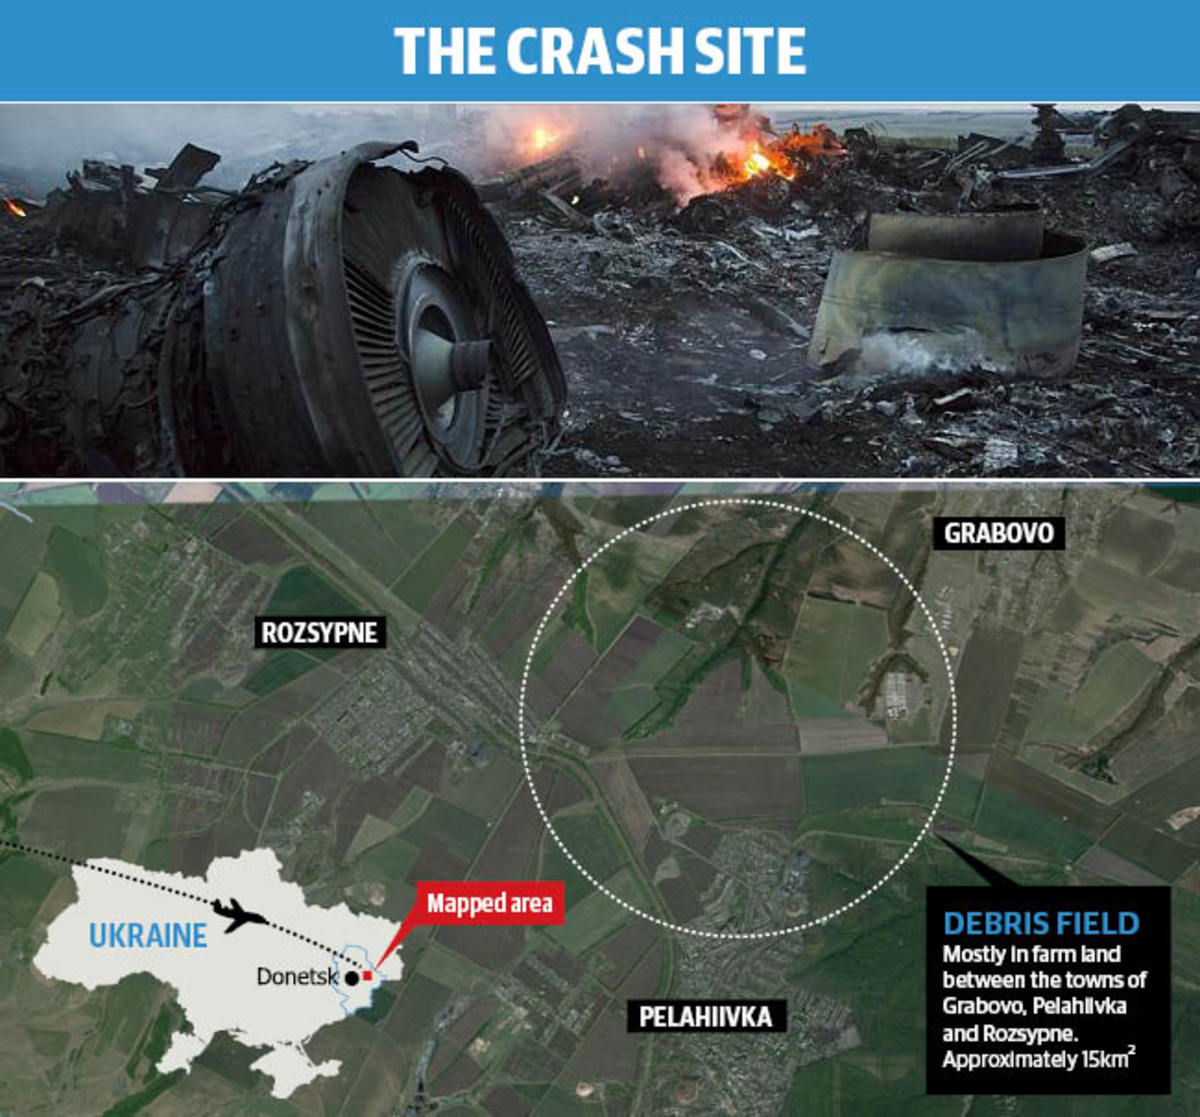 (Above) Burning Debris from MH17's Boeing 777-200ER after being shot down by a SAM (Surface to Air Missile over Ukraine) (Below) Location of the crash-site